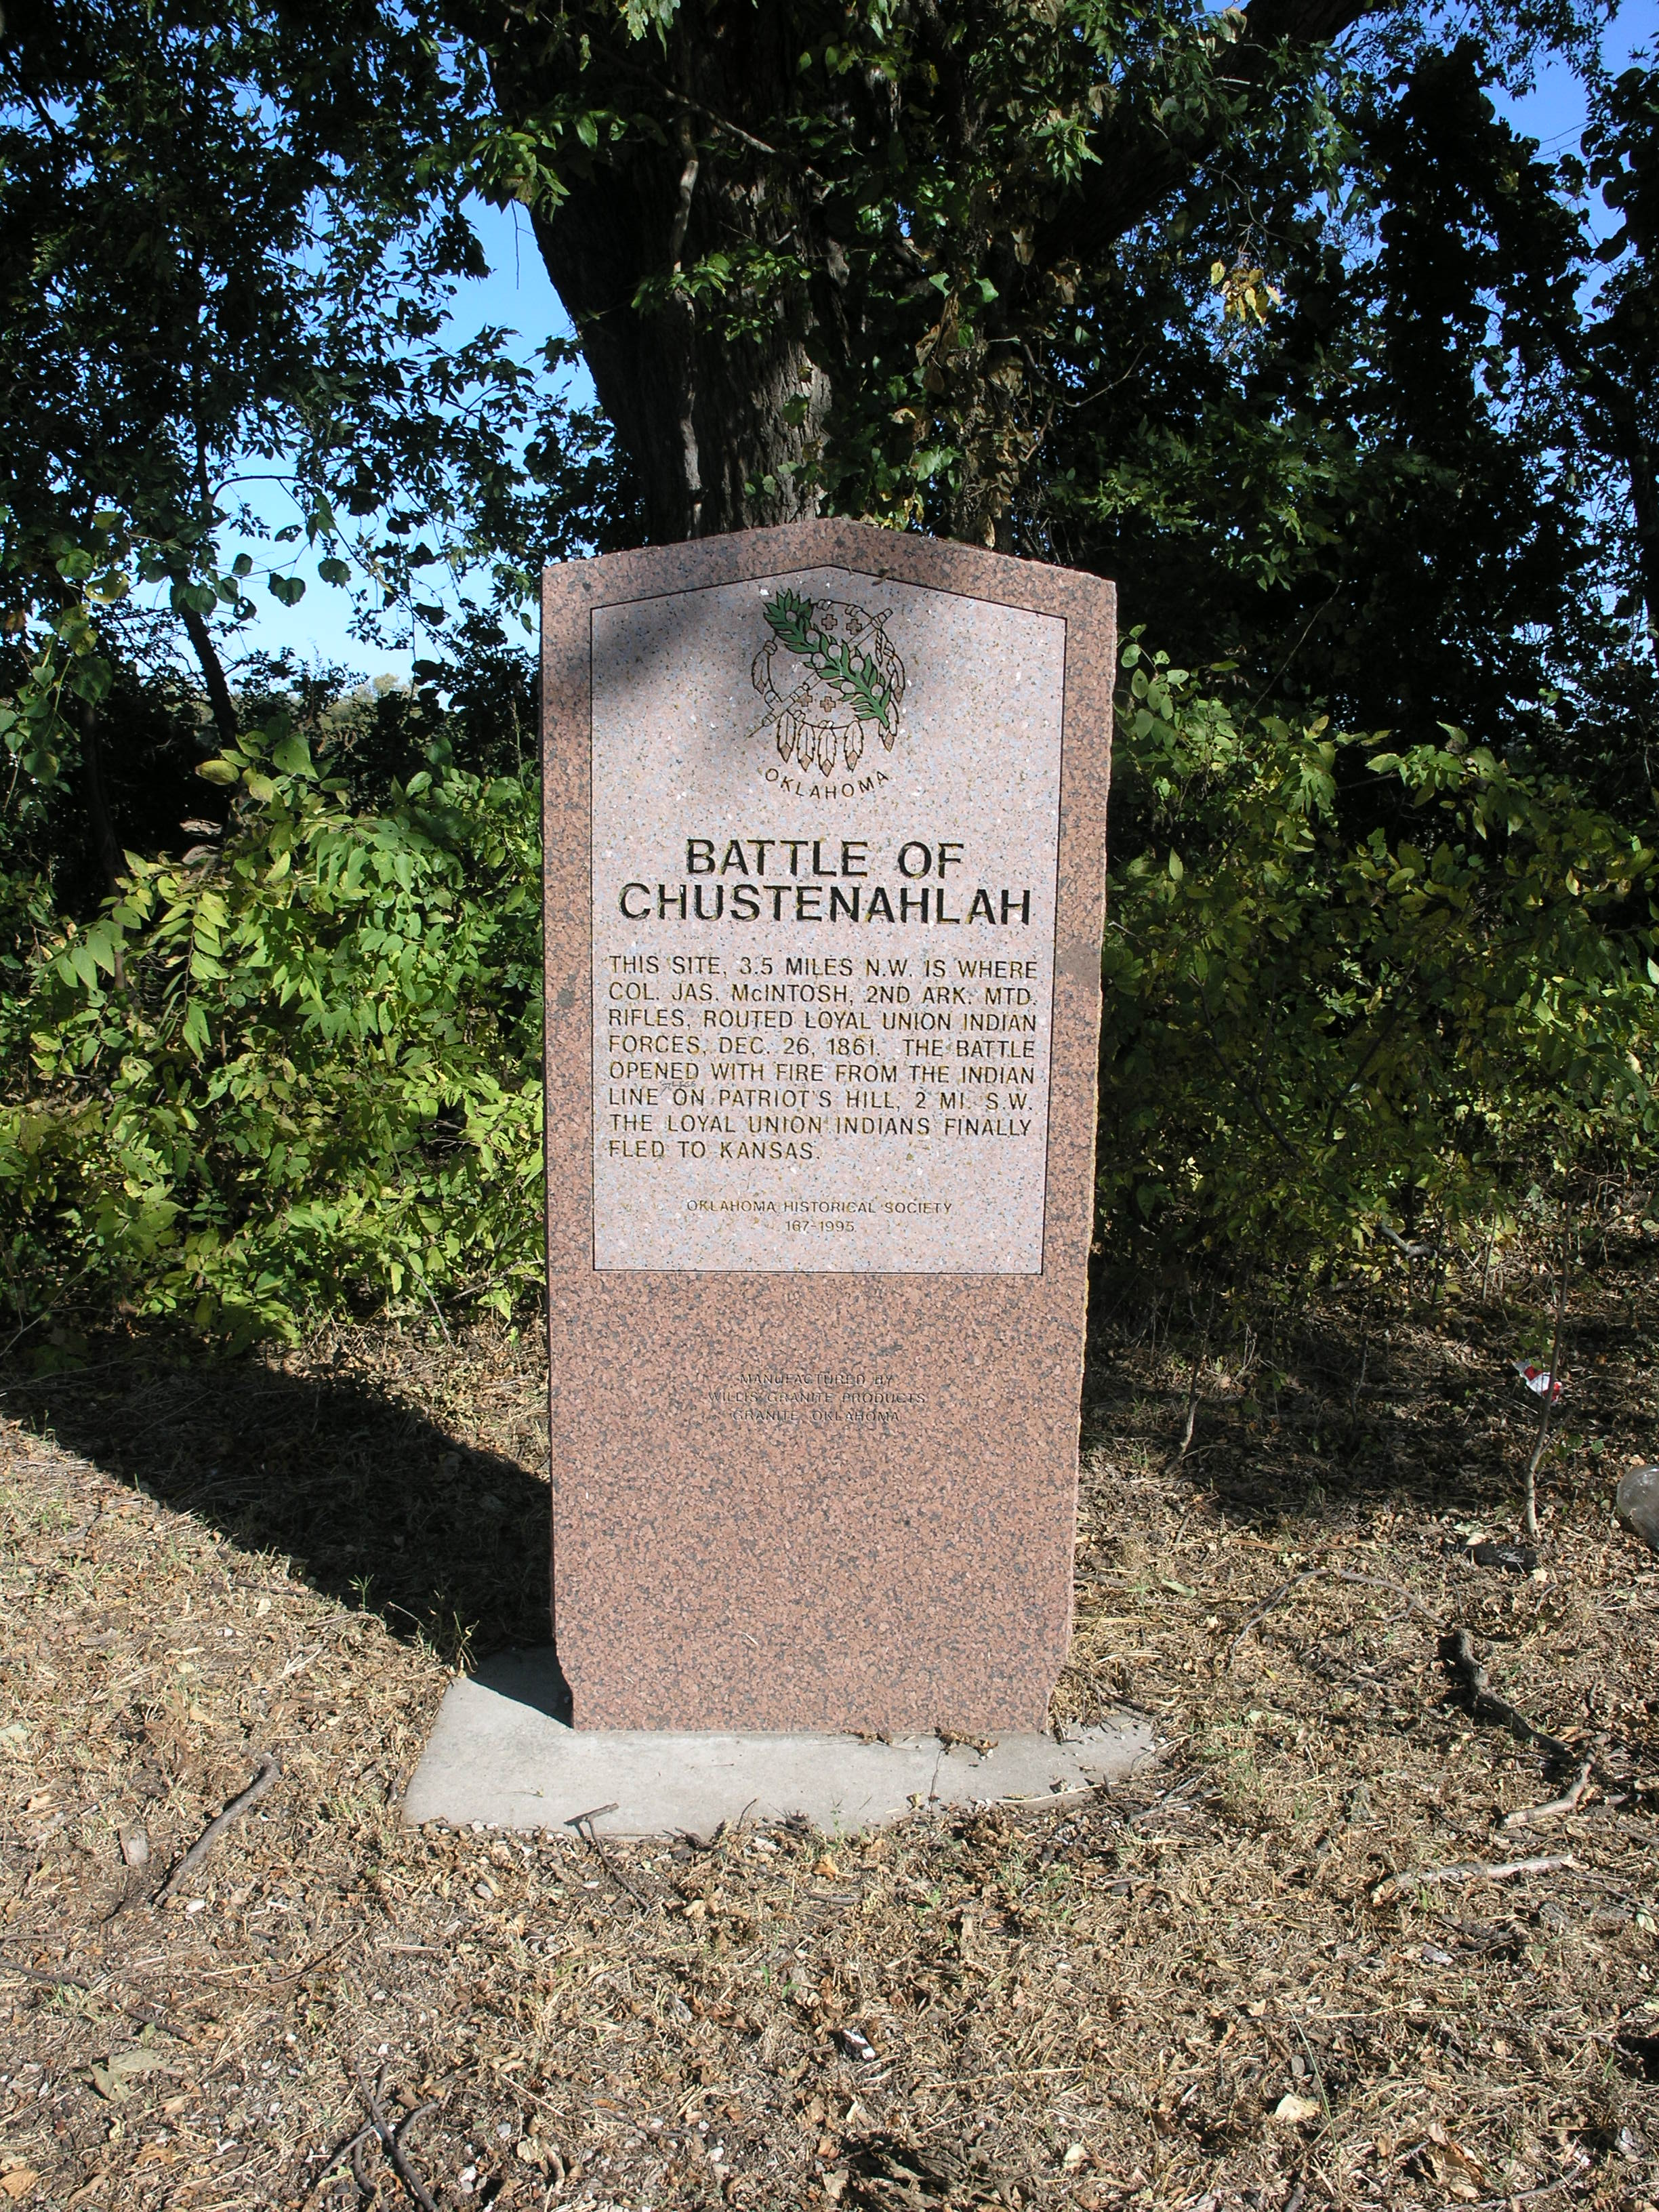 Exploring Oklahoma History: Battle of Chustenahlah